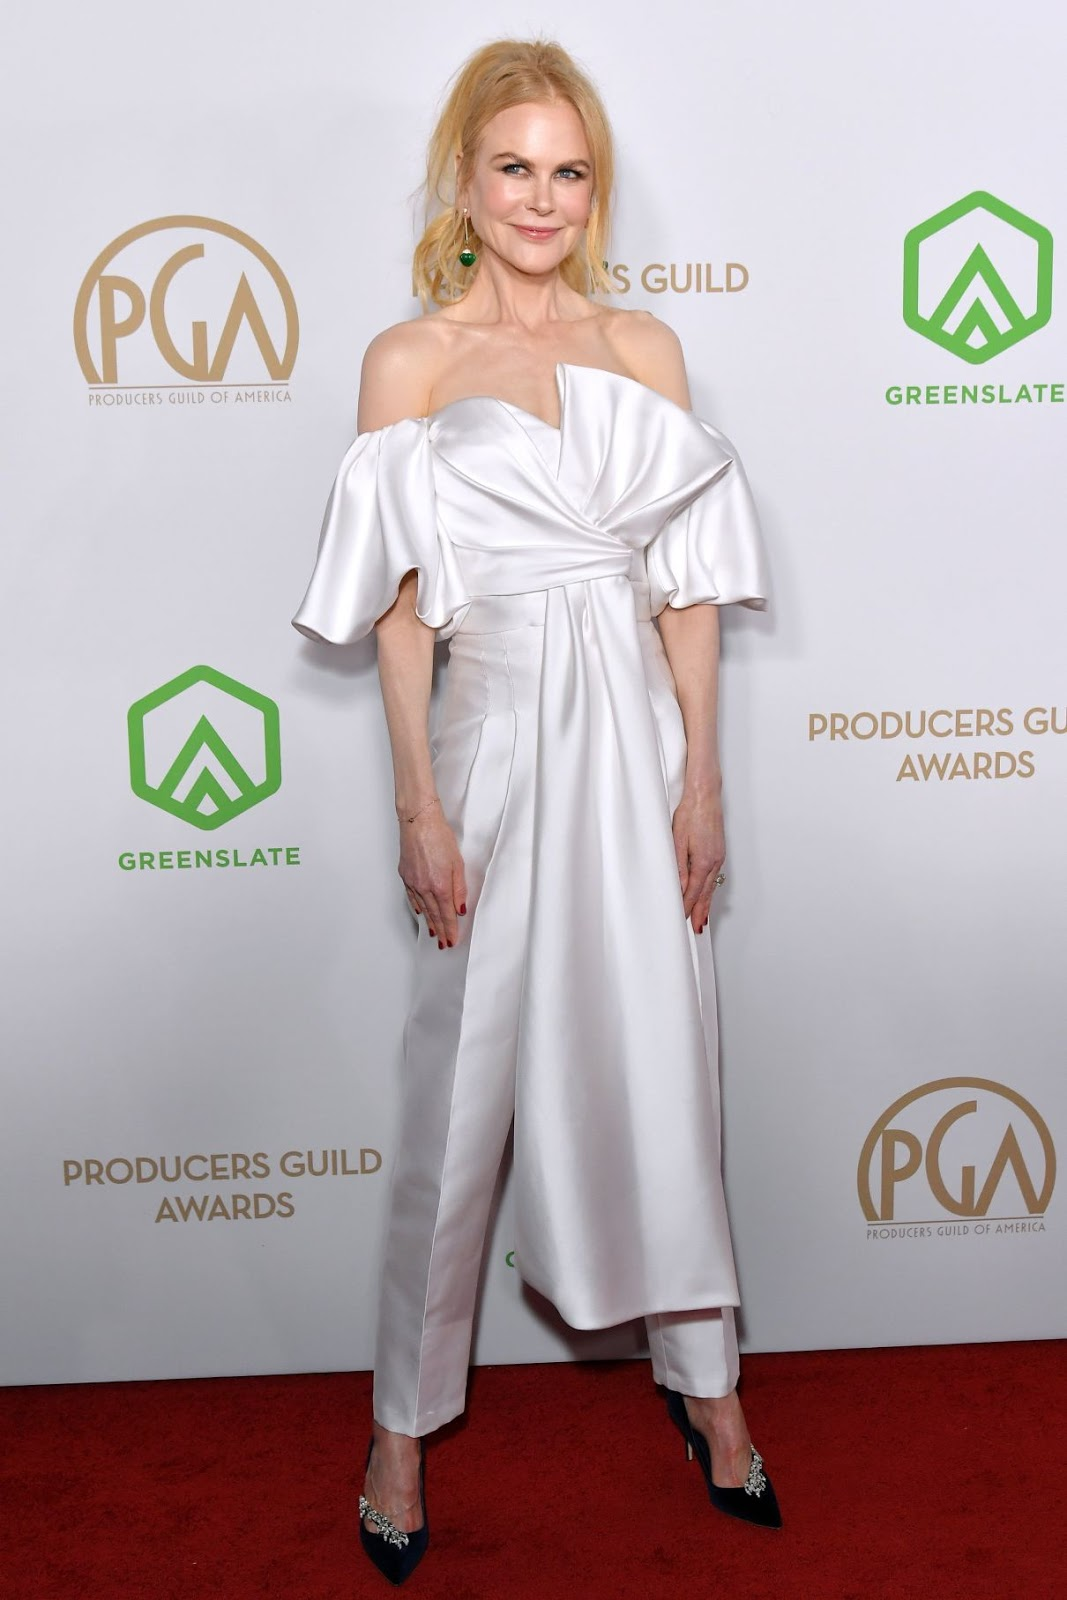 Nicole Kidman looks angelic in daring $6,300 silk ensemble at the 31st Annual Producers Guild Awards